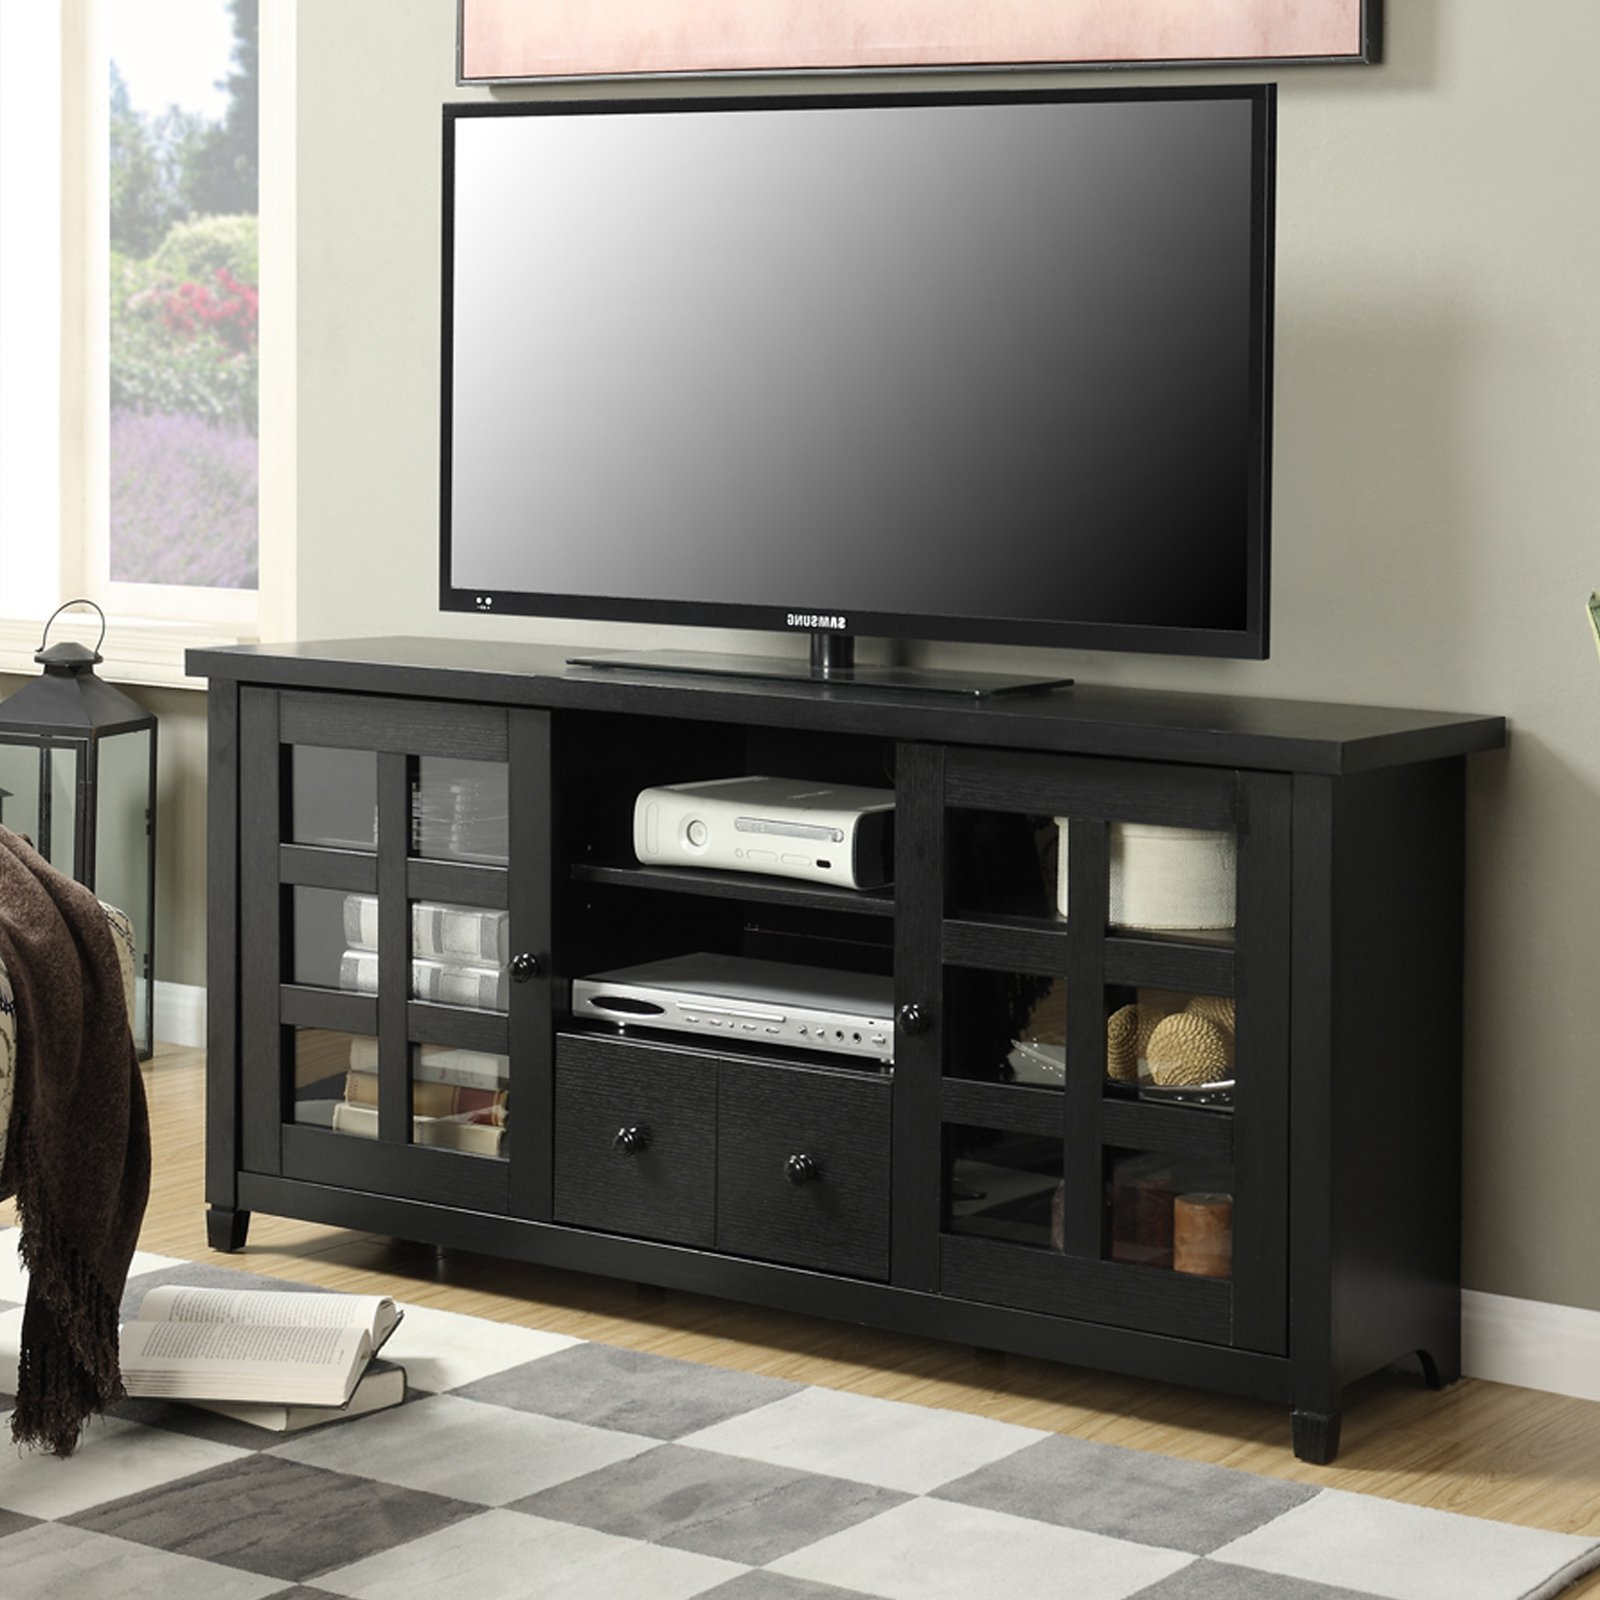 Tv Stands & Entertainment Centers | Hayneedle Intended For Laurent 50 Inch Tv Stands (View 14 of 20)